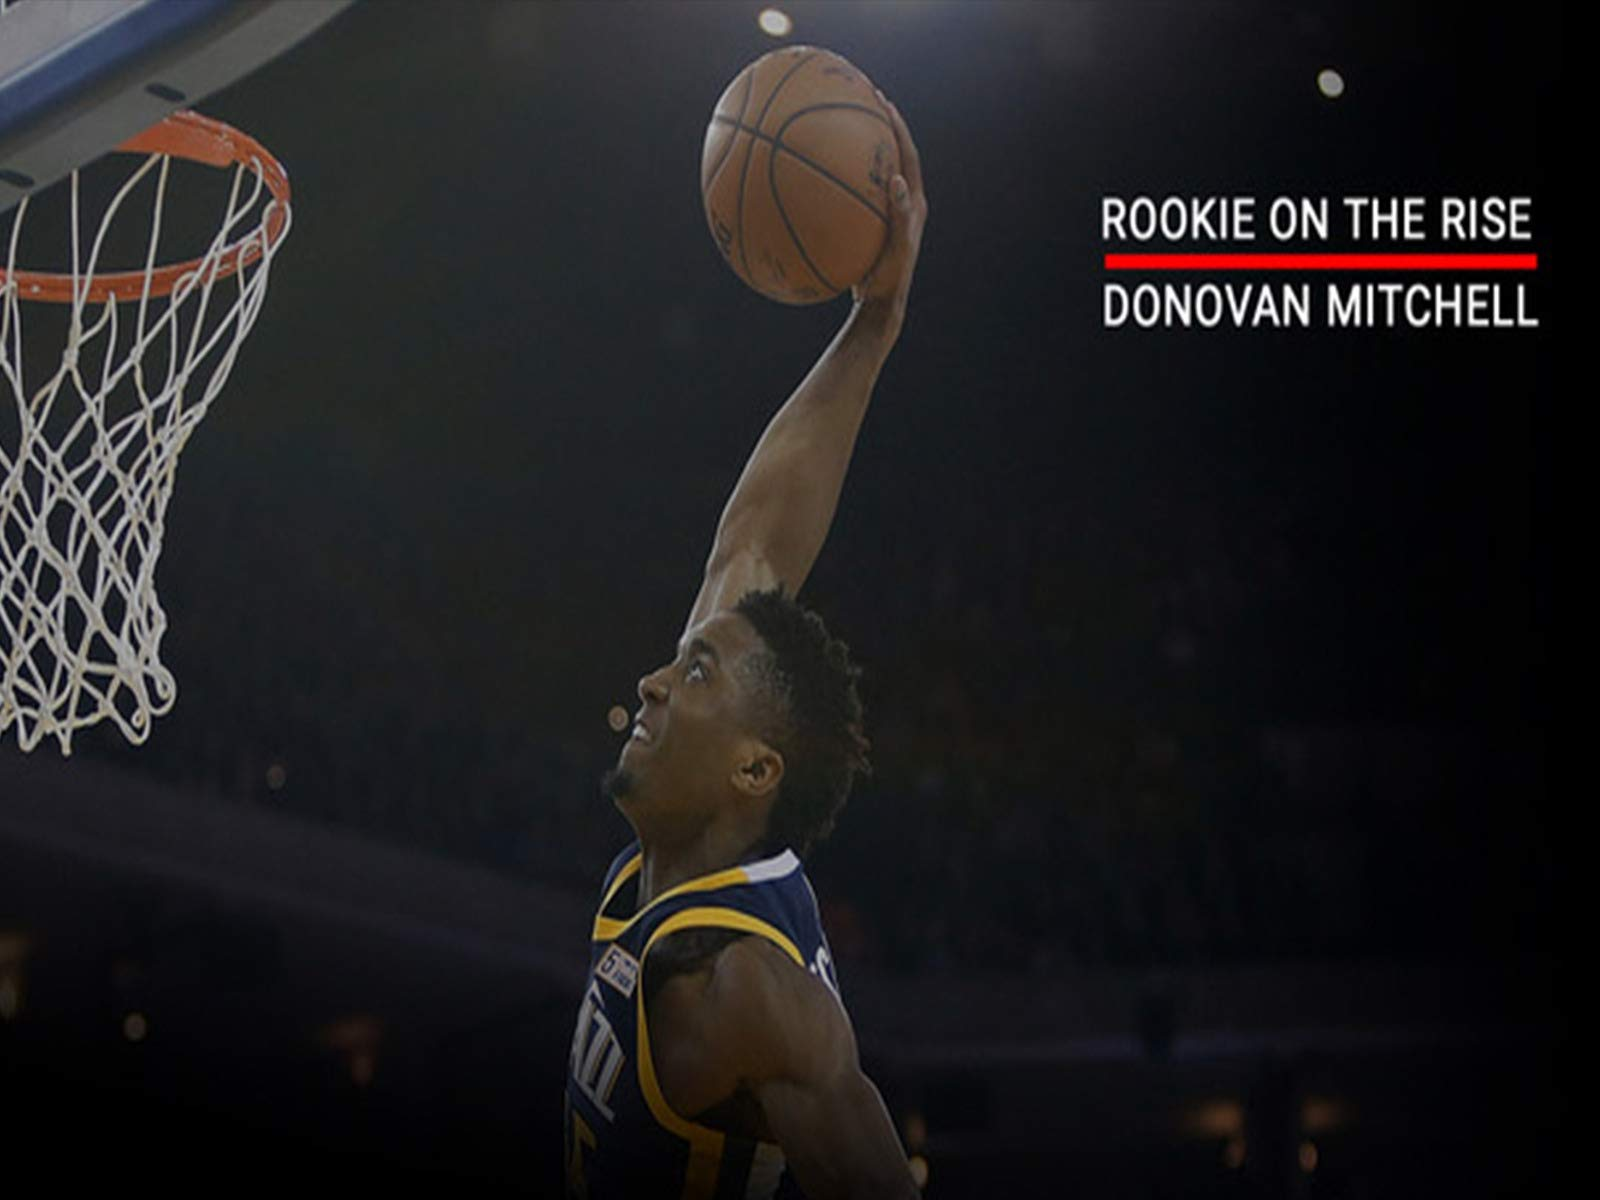 Rookie On The Rise